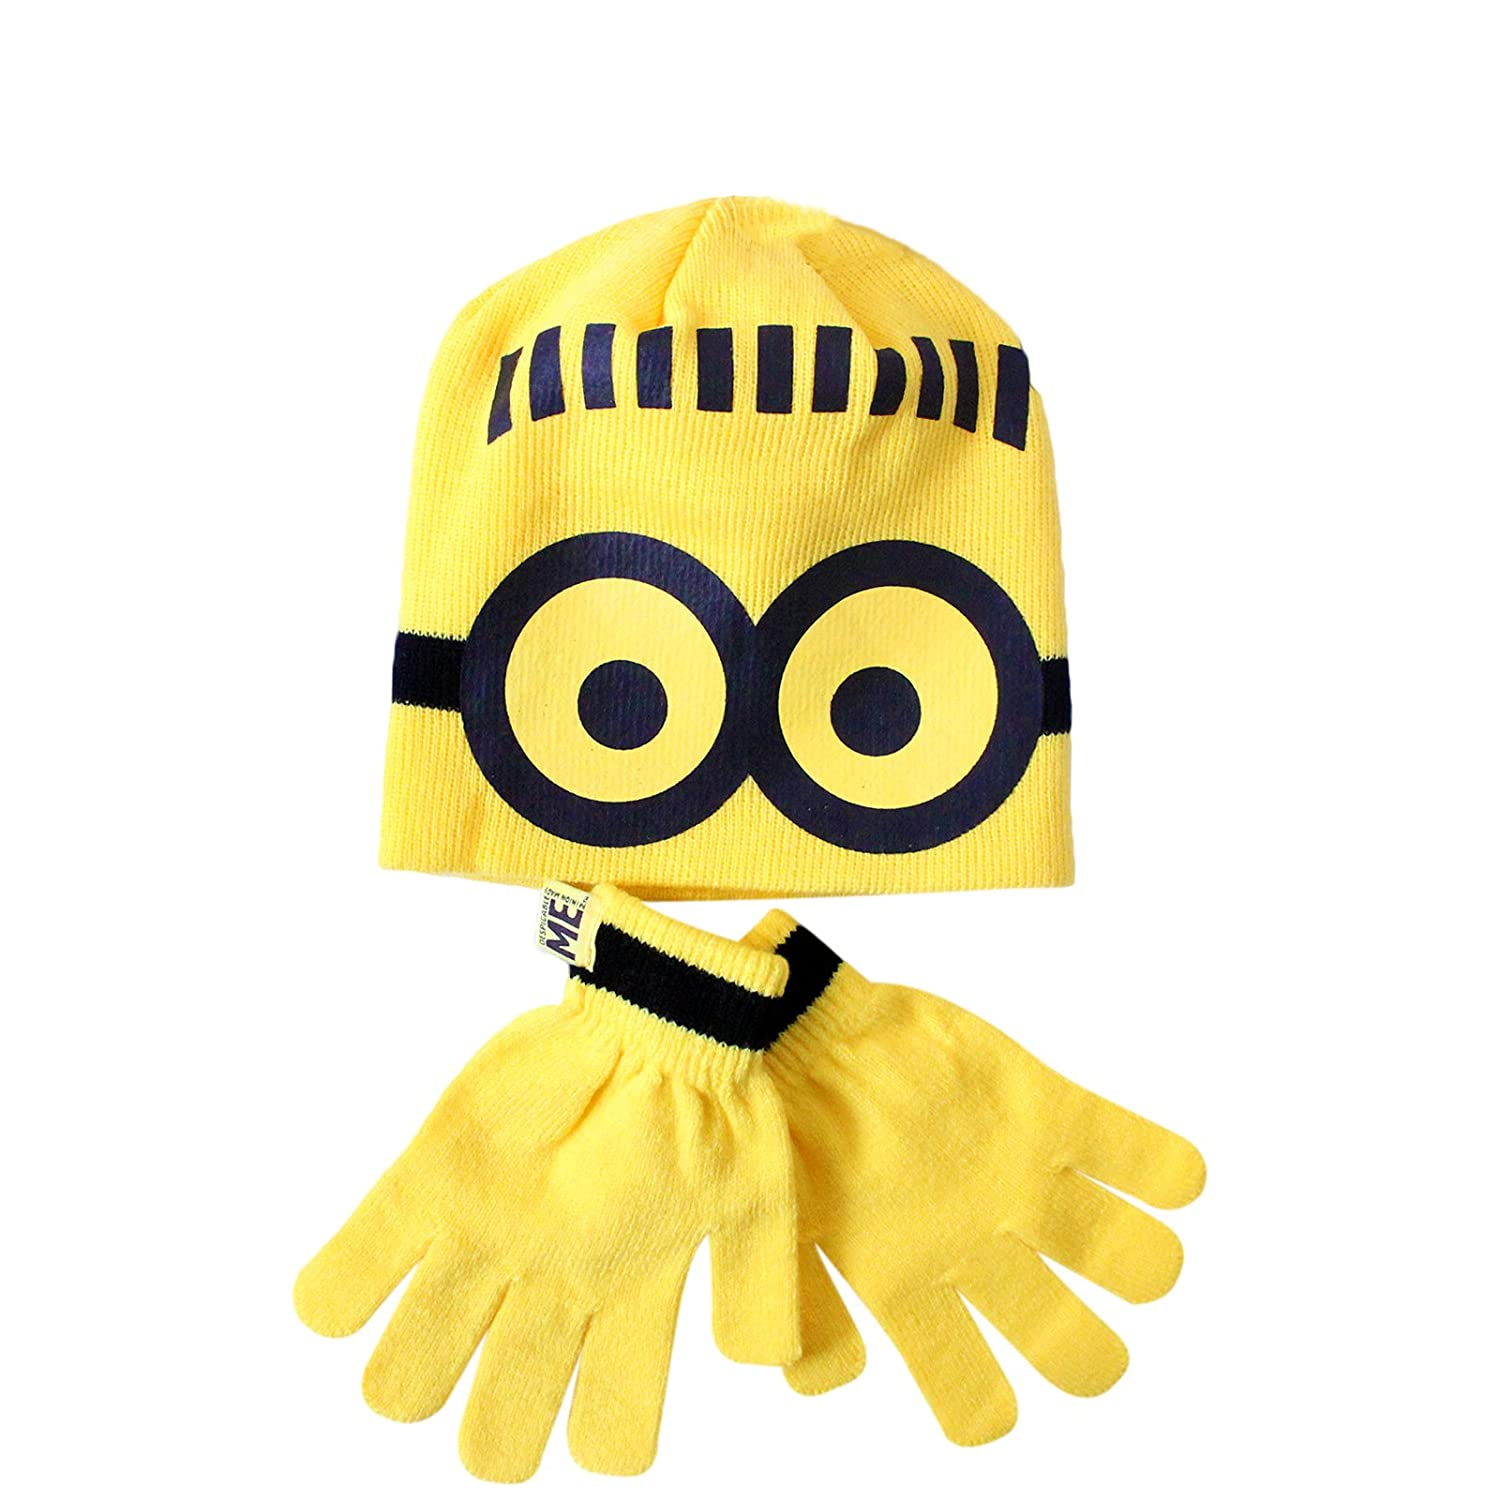 Boys Despicable Me Minions Yellow Beanie Hat Gloves Bob The Minion Print Design Ages 3-6 Years